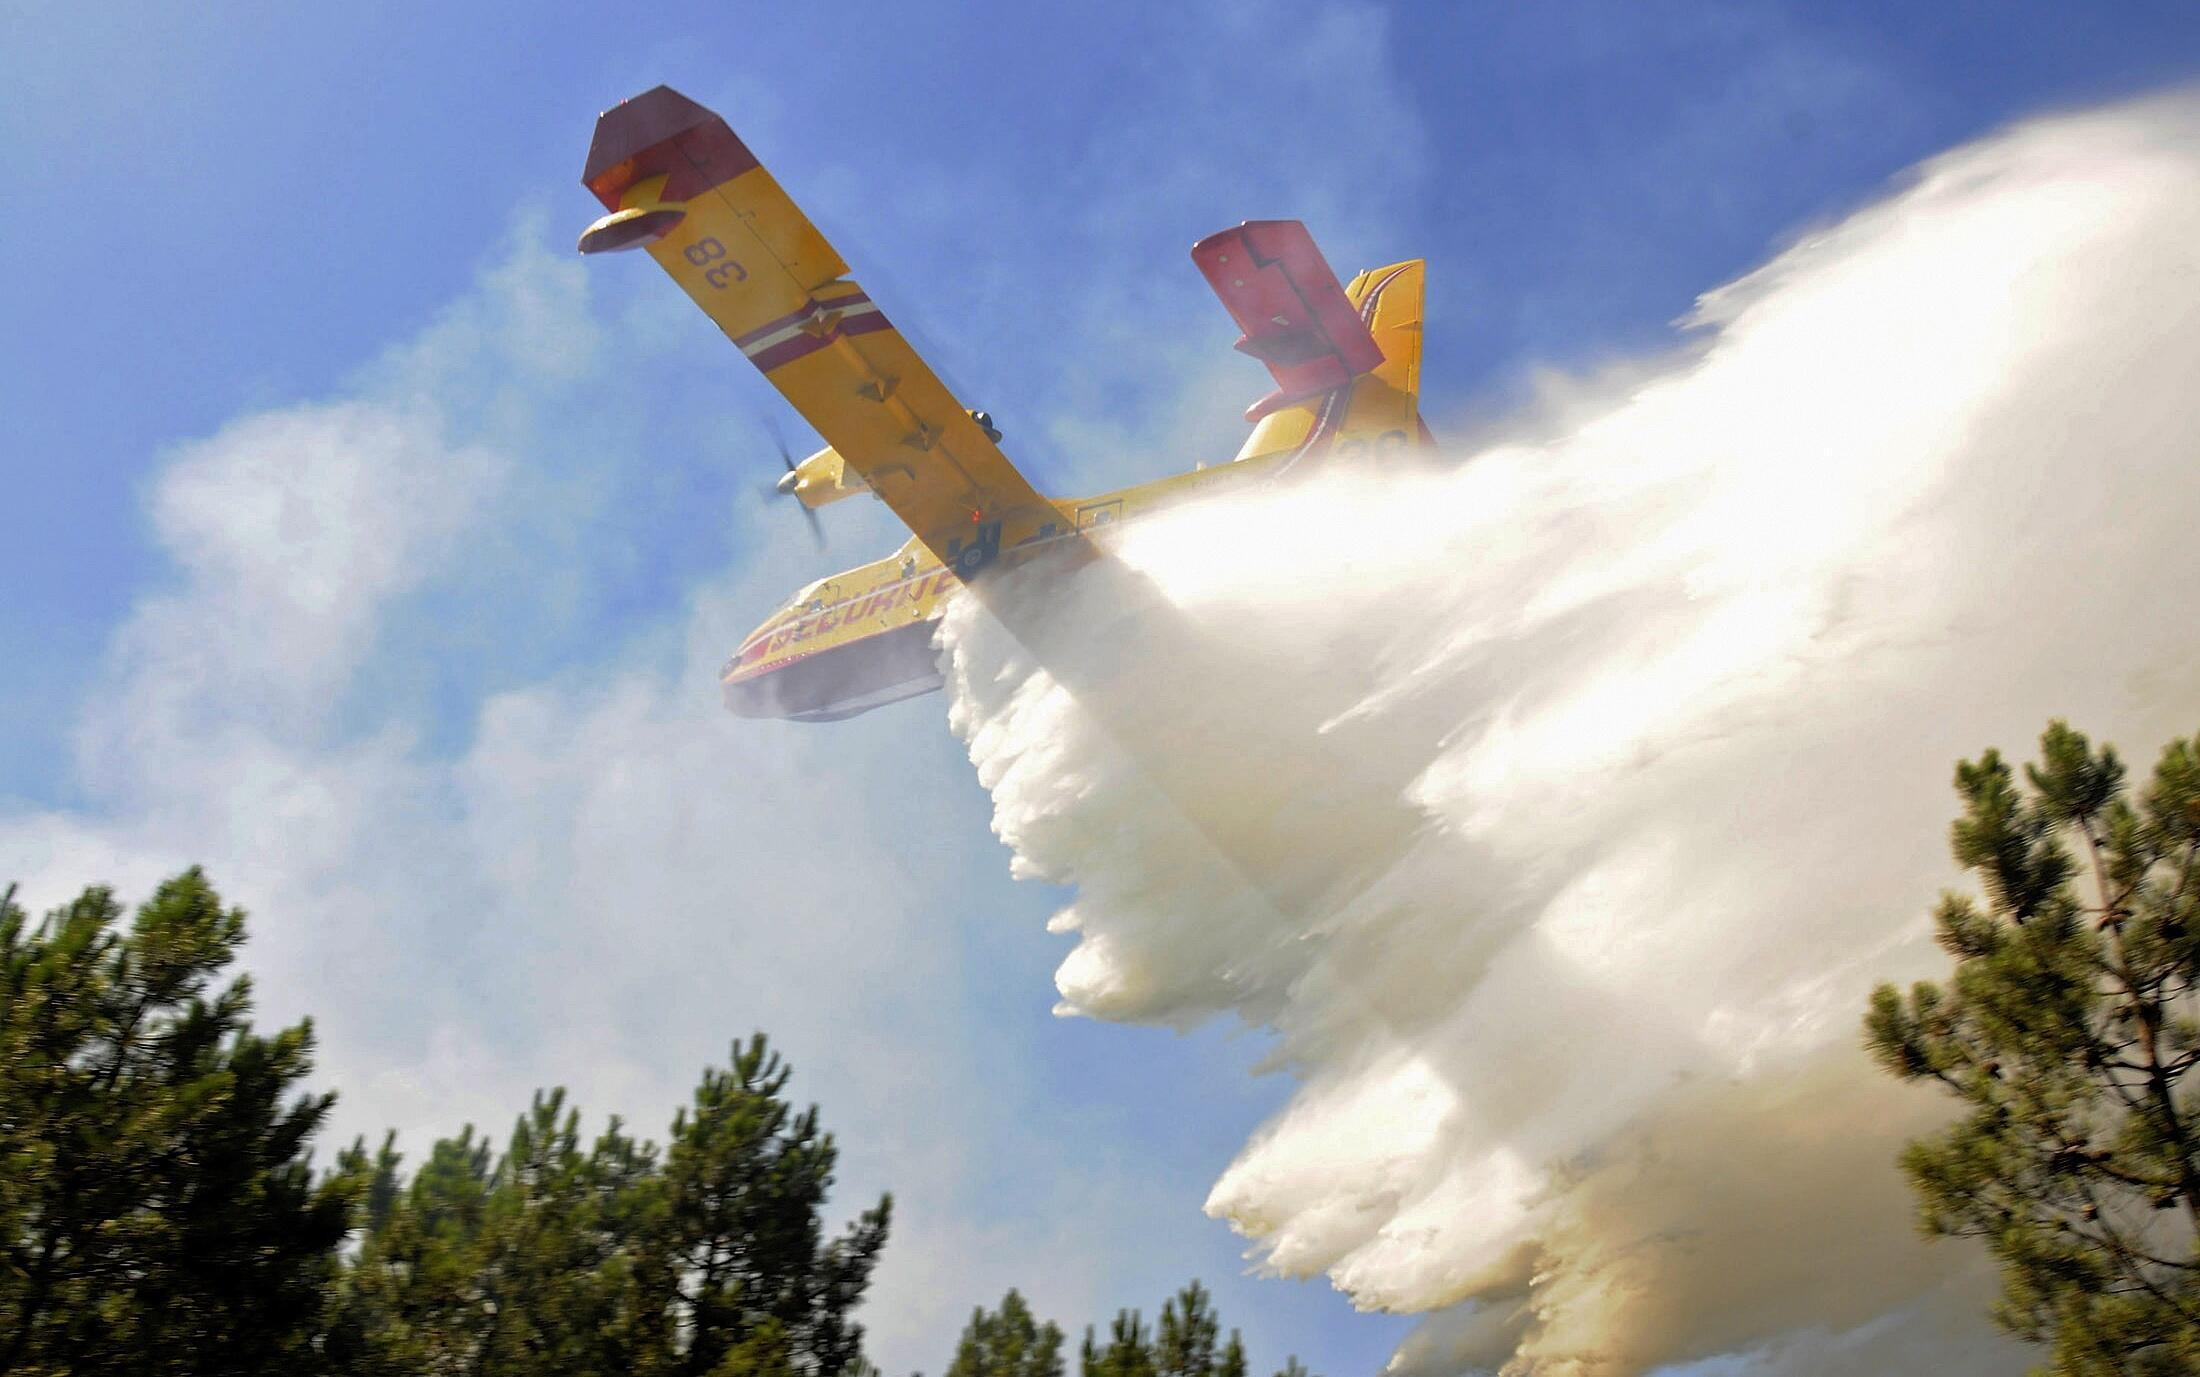 A firefighting plane drops water on the forest fire near Lacanau, western France